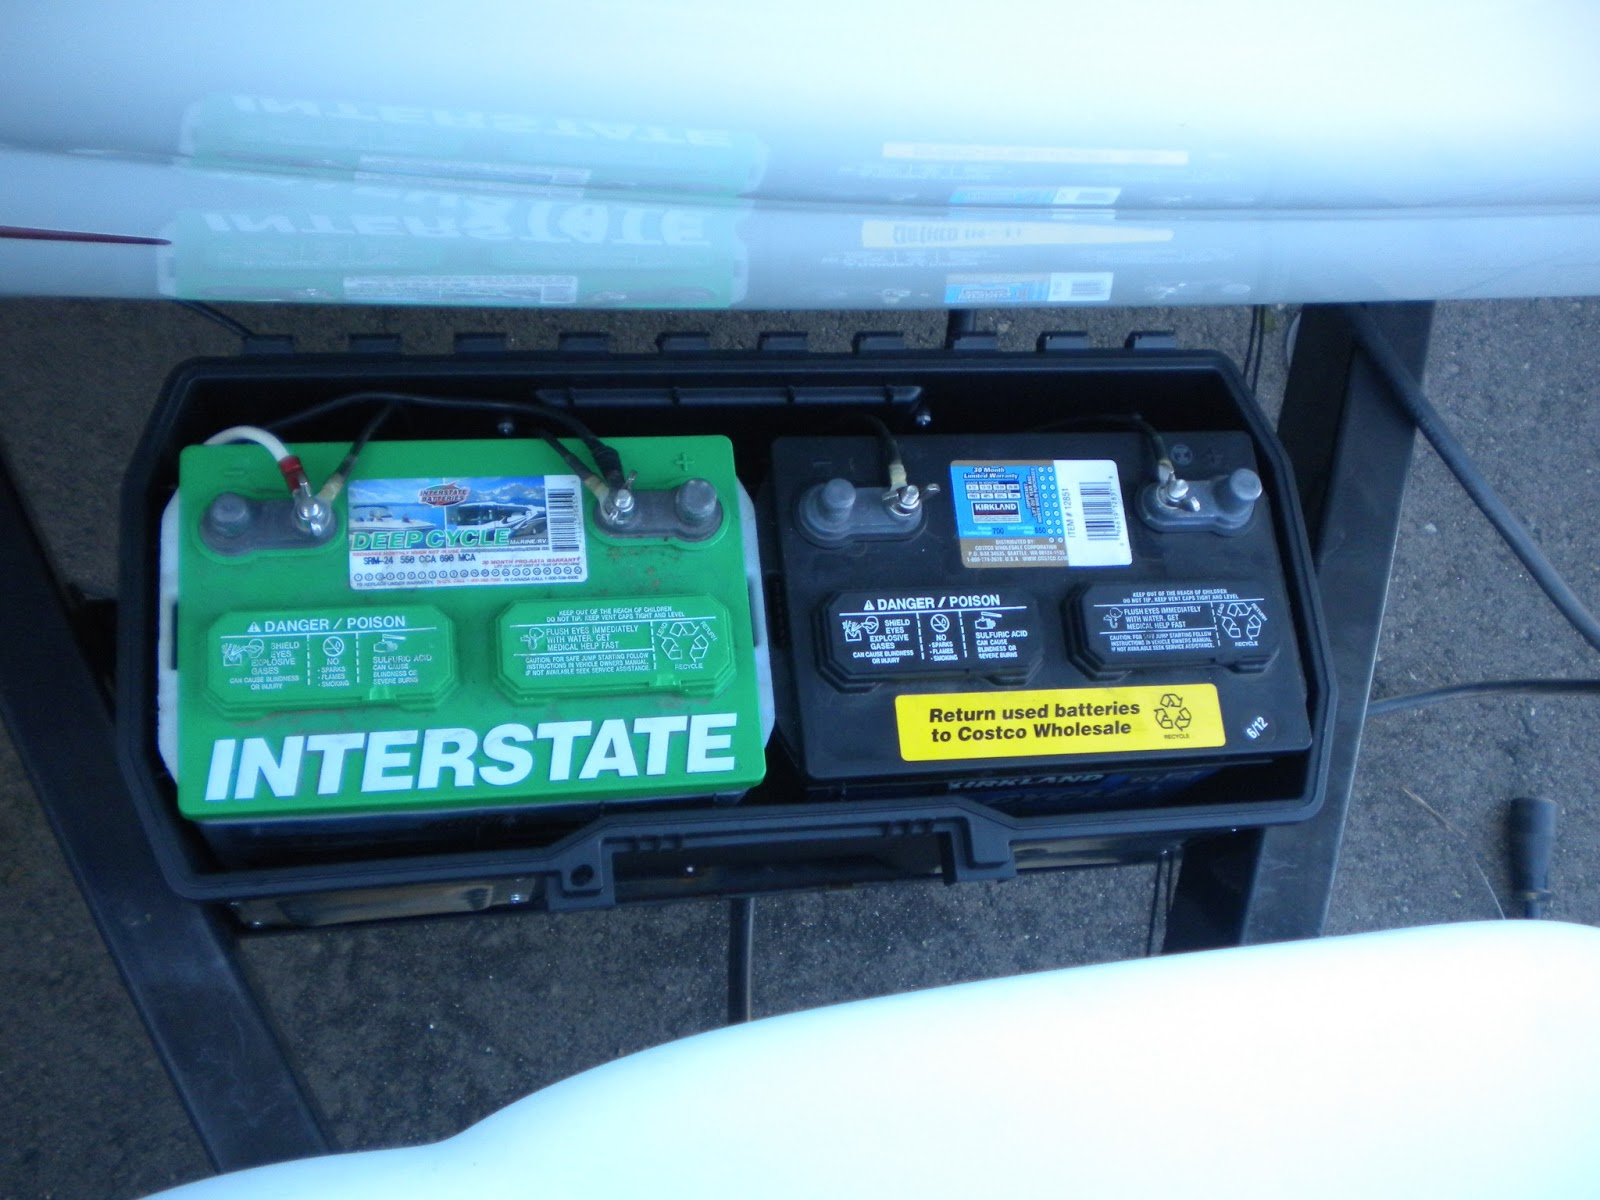 Our RV Adventures Modification Adding a Second House Battery